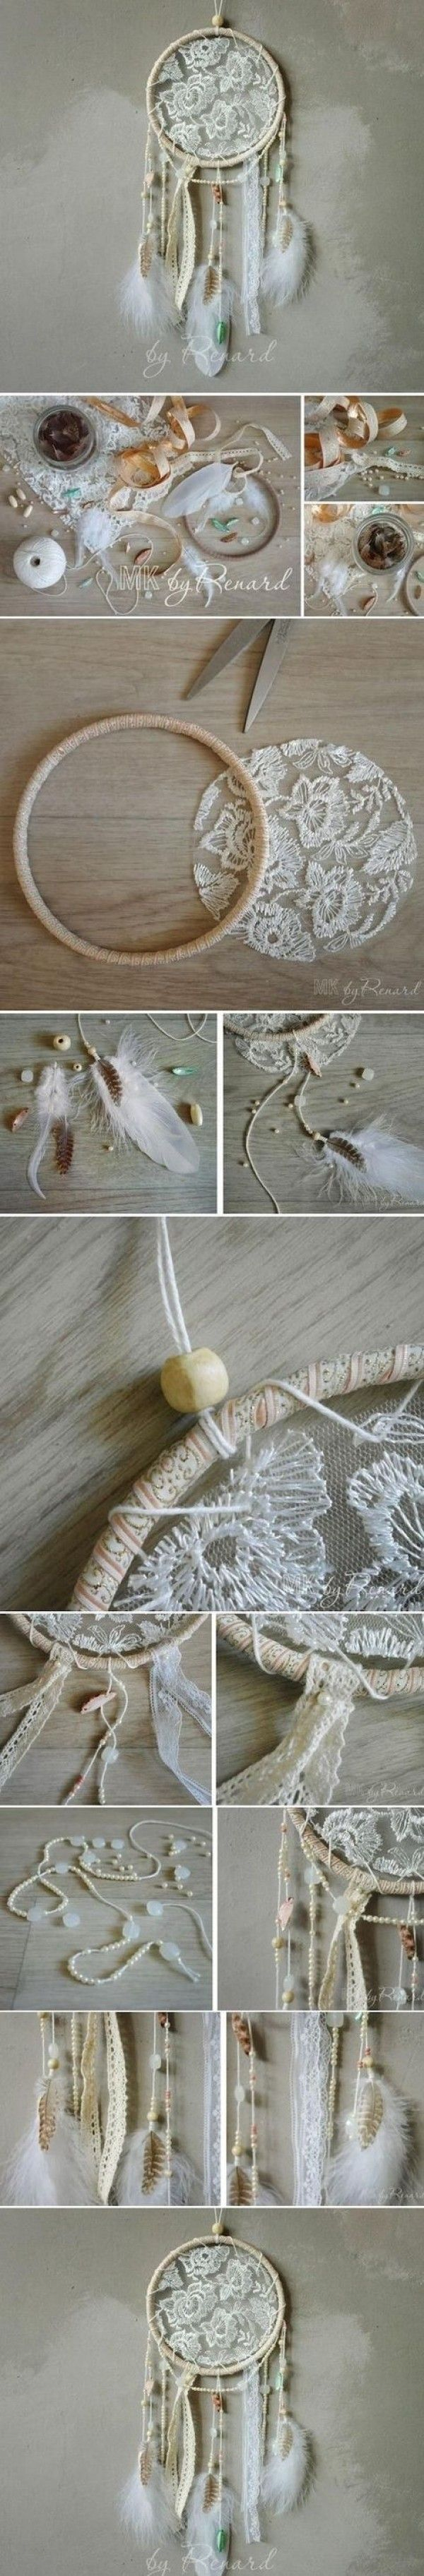 The 25 best Bohemian crafts ideas on Pinterest Bohemian